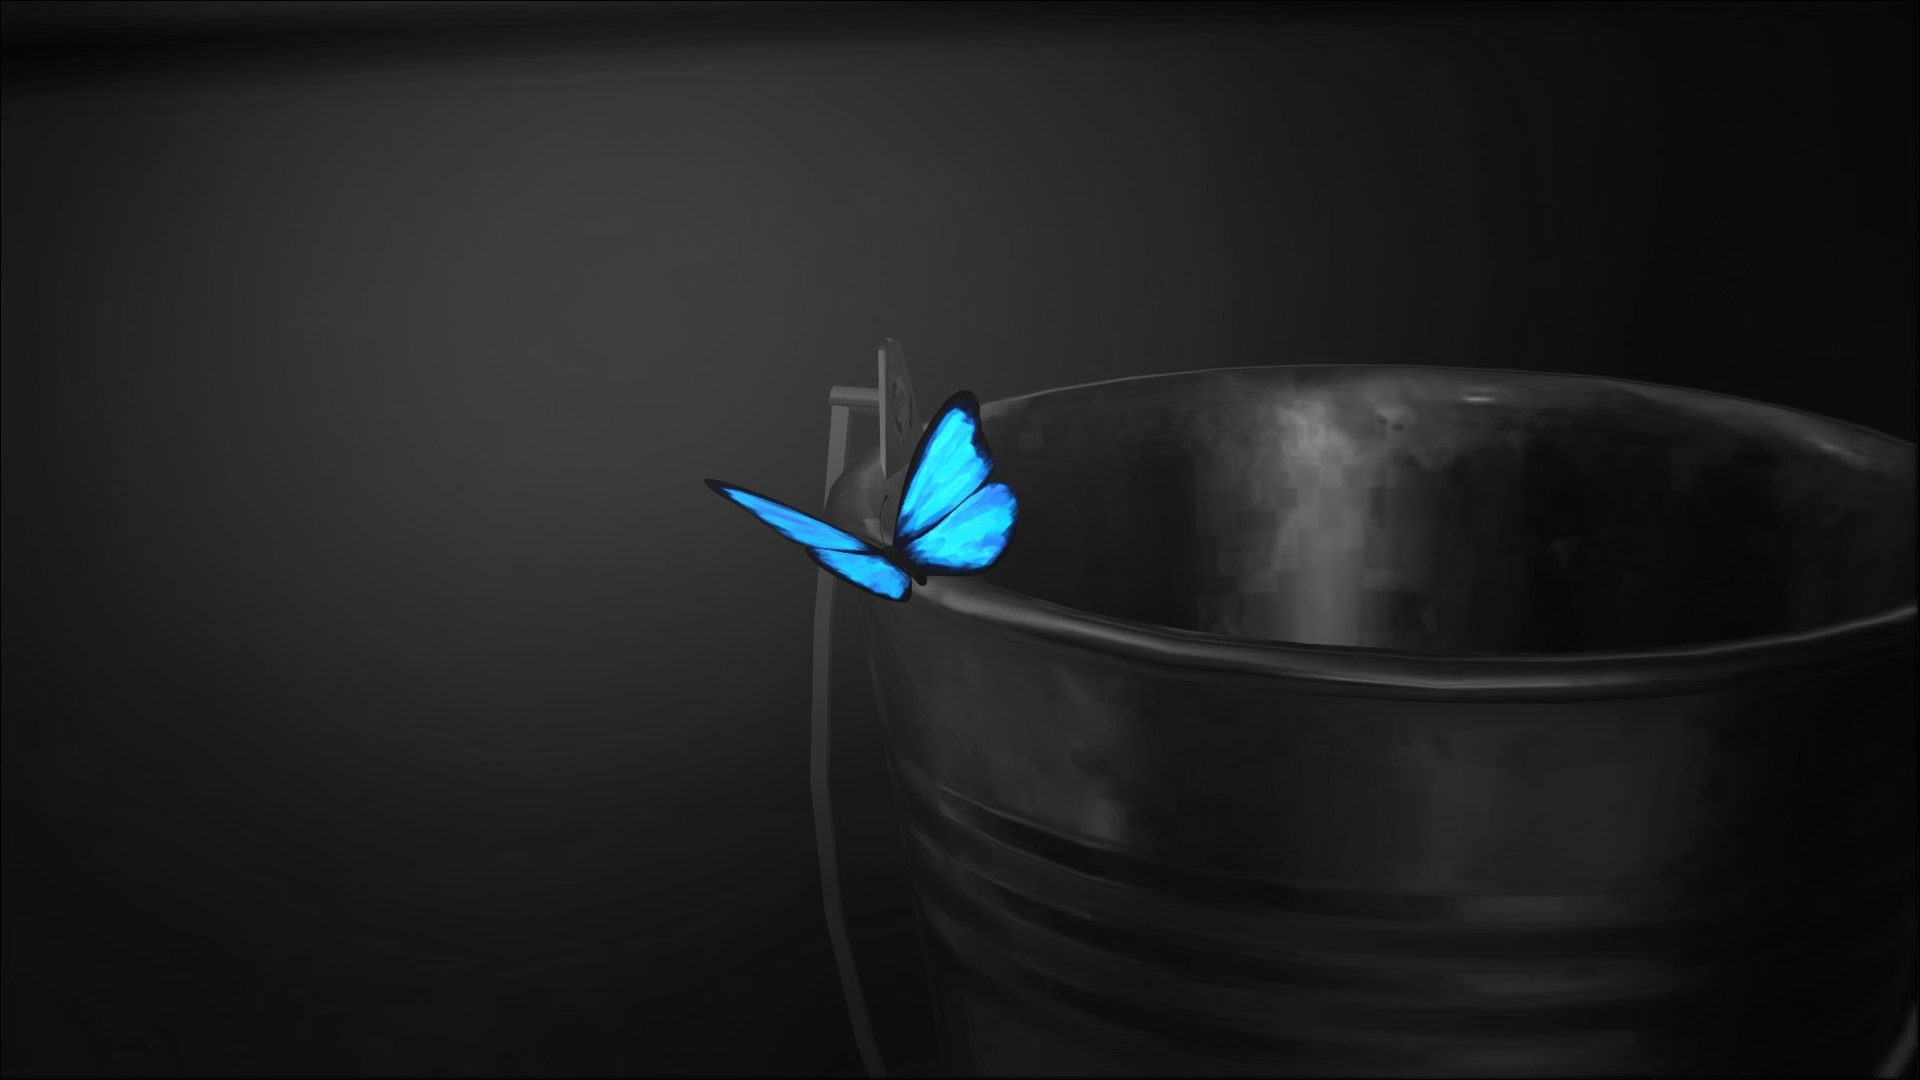 Butterfly free image